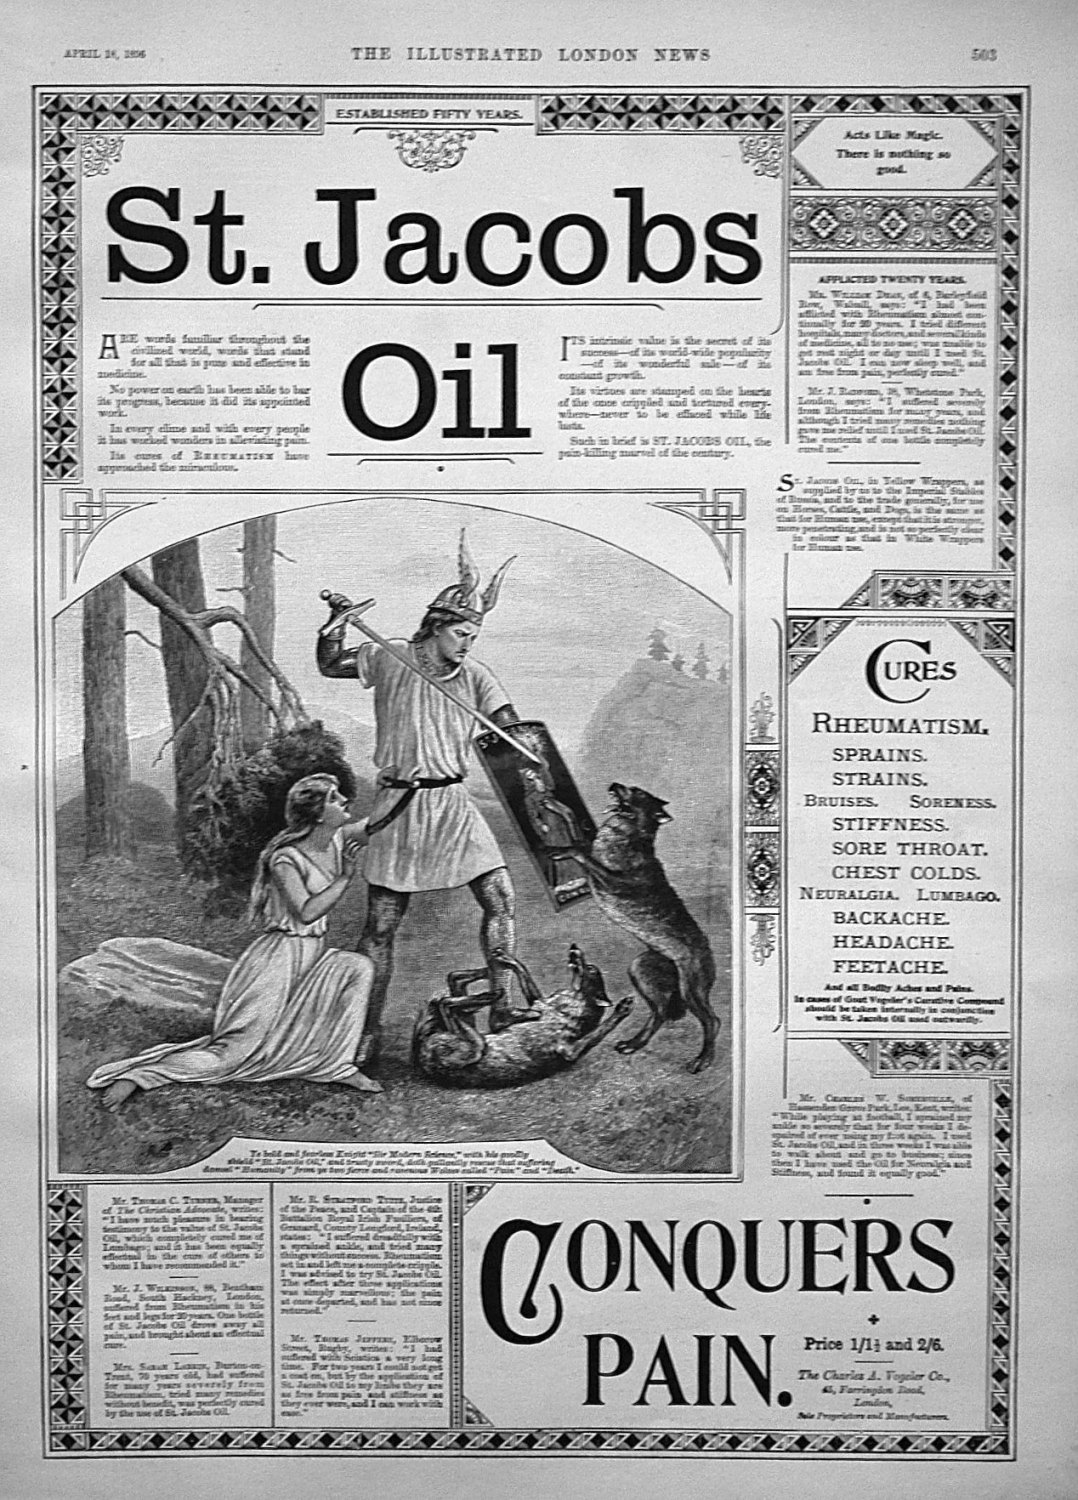 St. Jacobs Oil. 1896